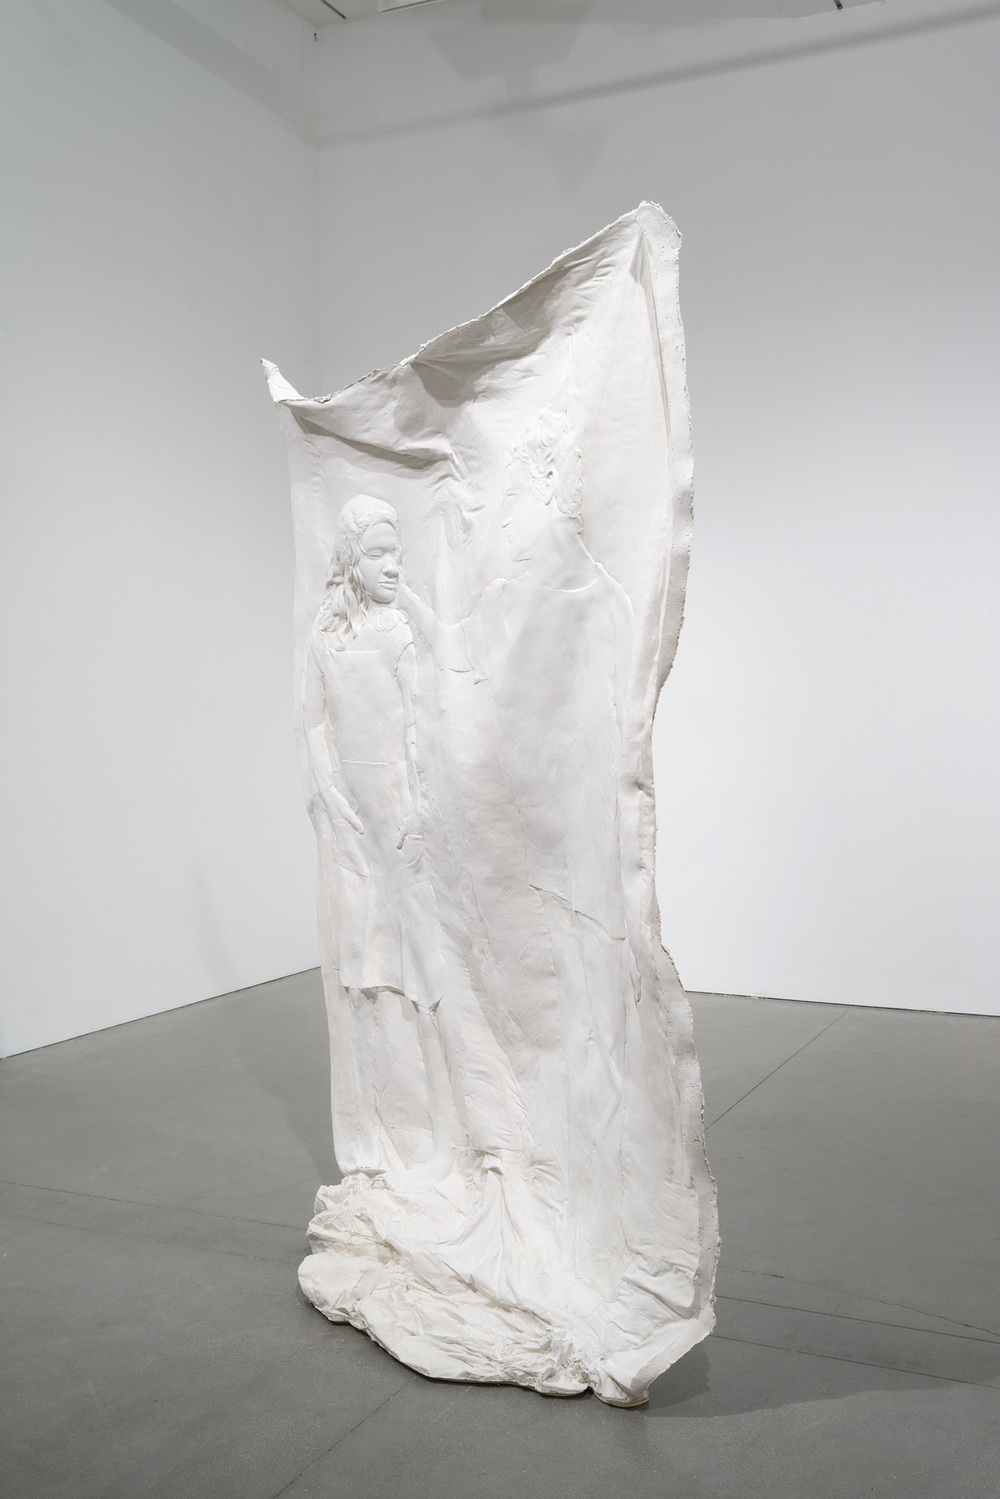 Untitled , 2014 Gypsum cement, fiberglass cloth, wood 90 x 60 x 24 inches